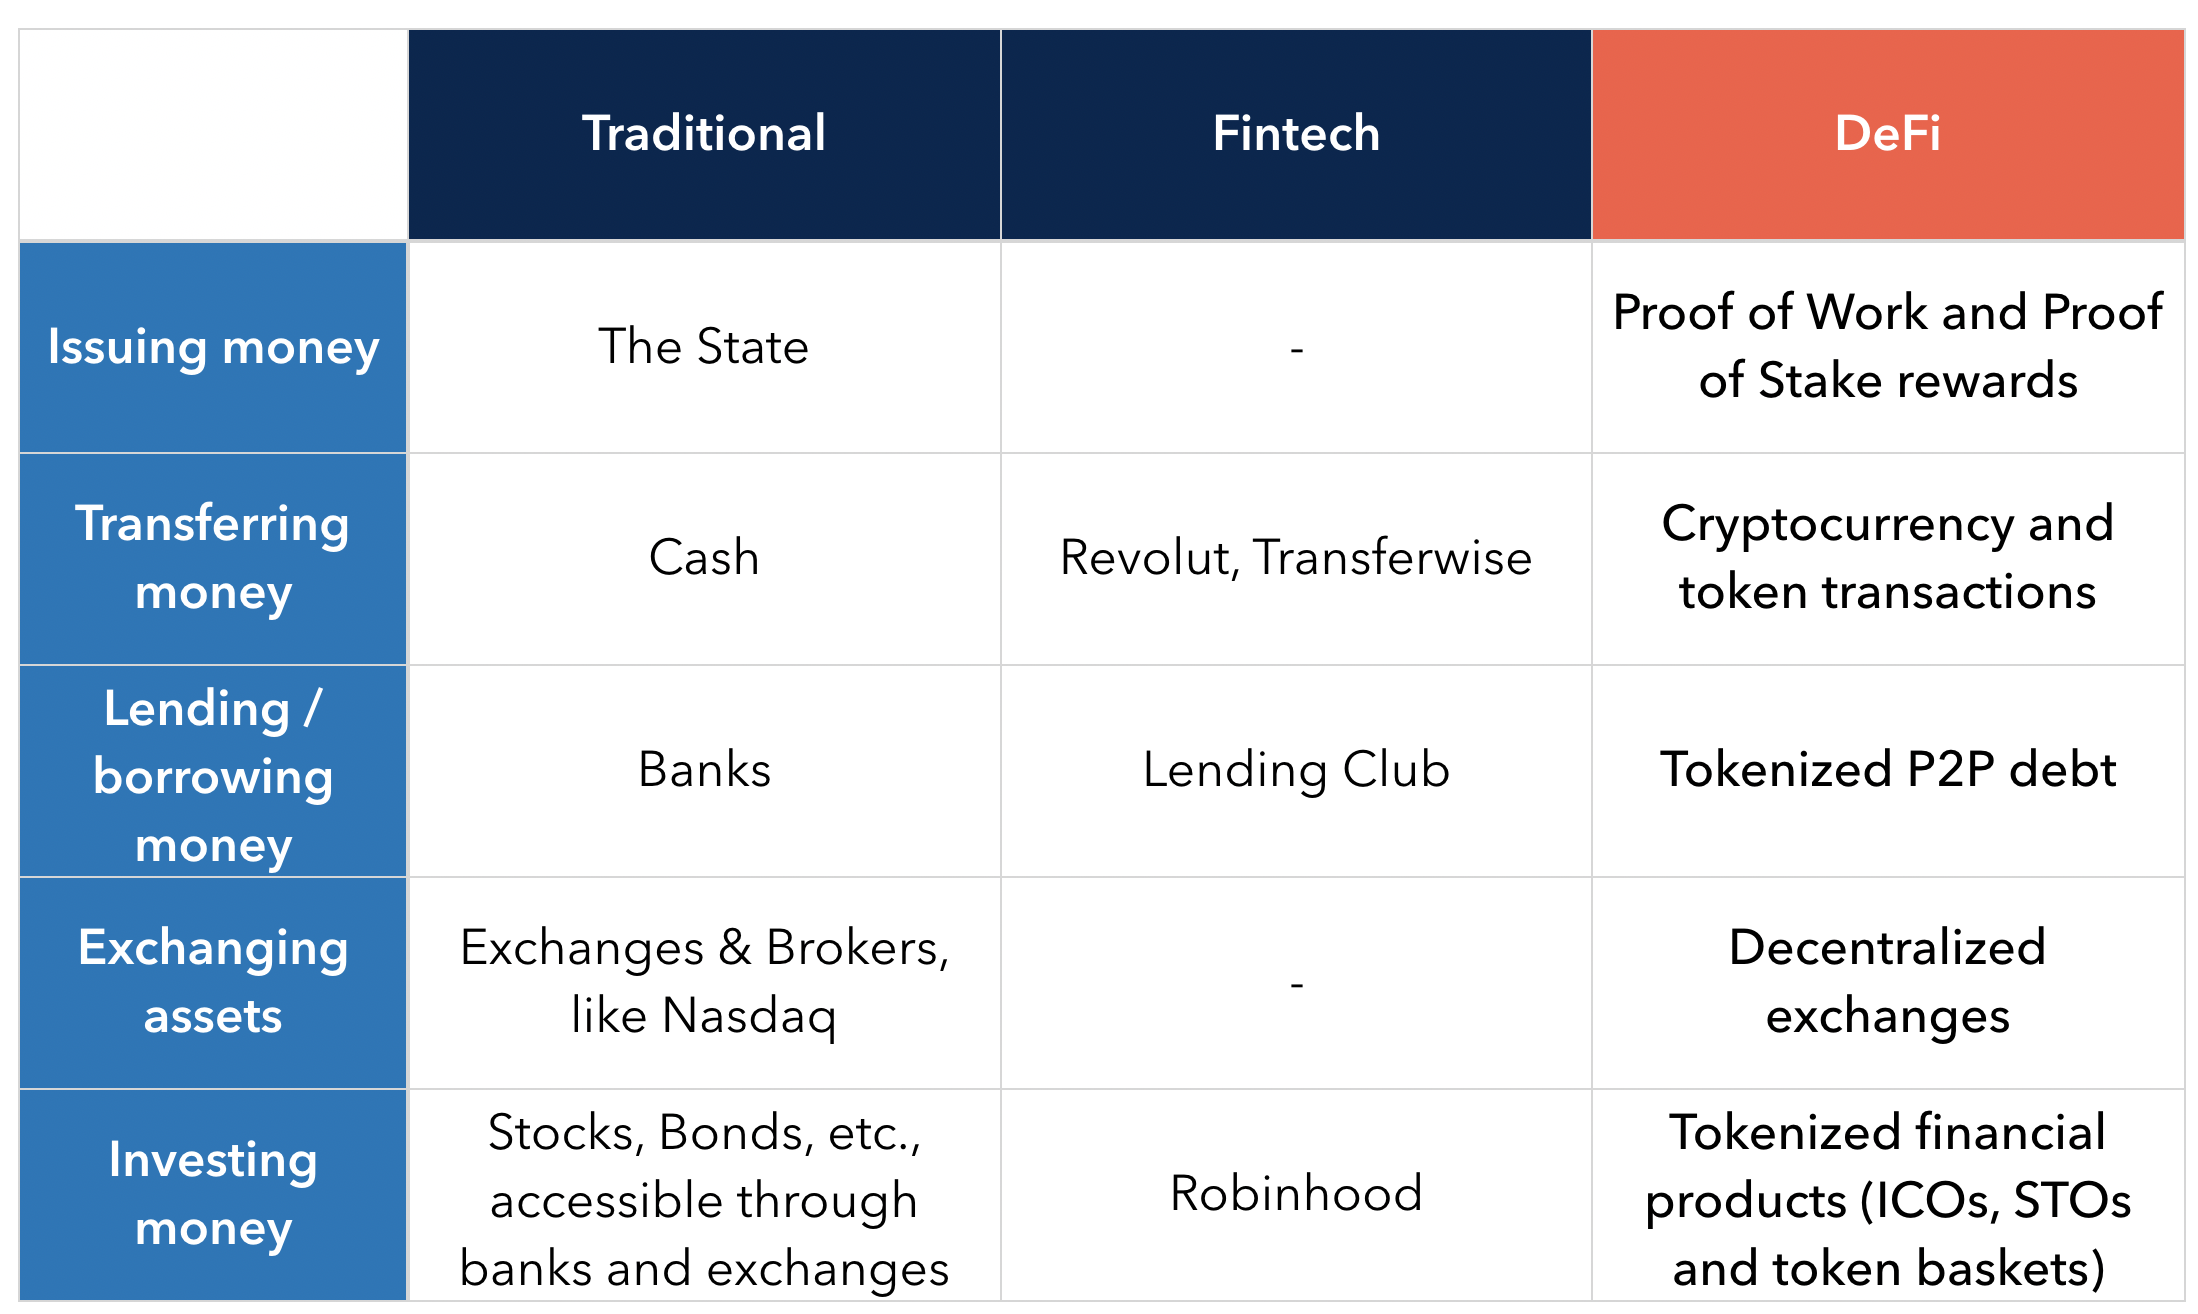 Comparison between traditional finance, fintech and DeFi for different financial services